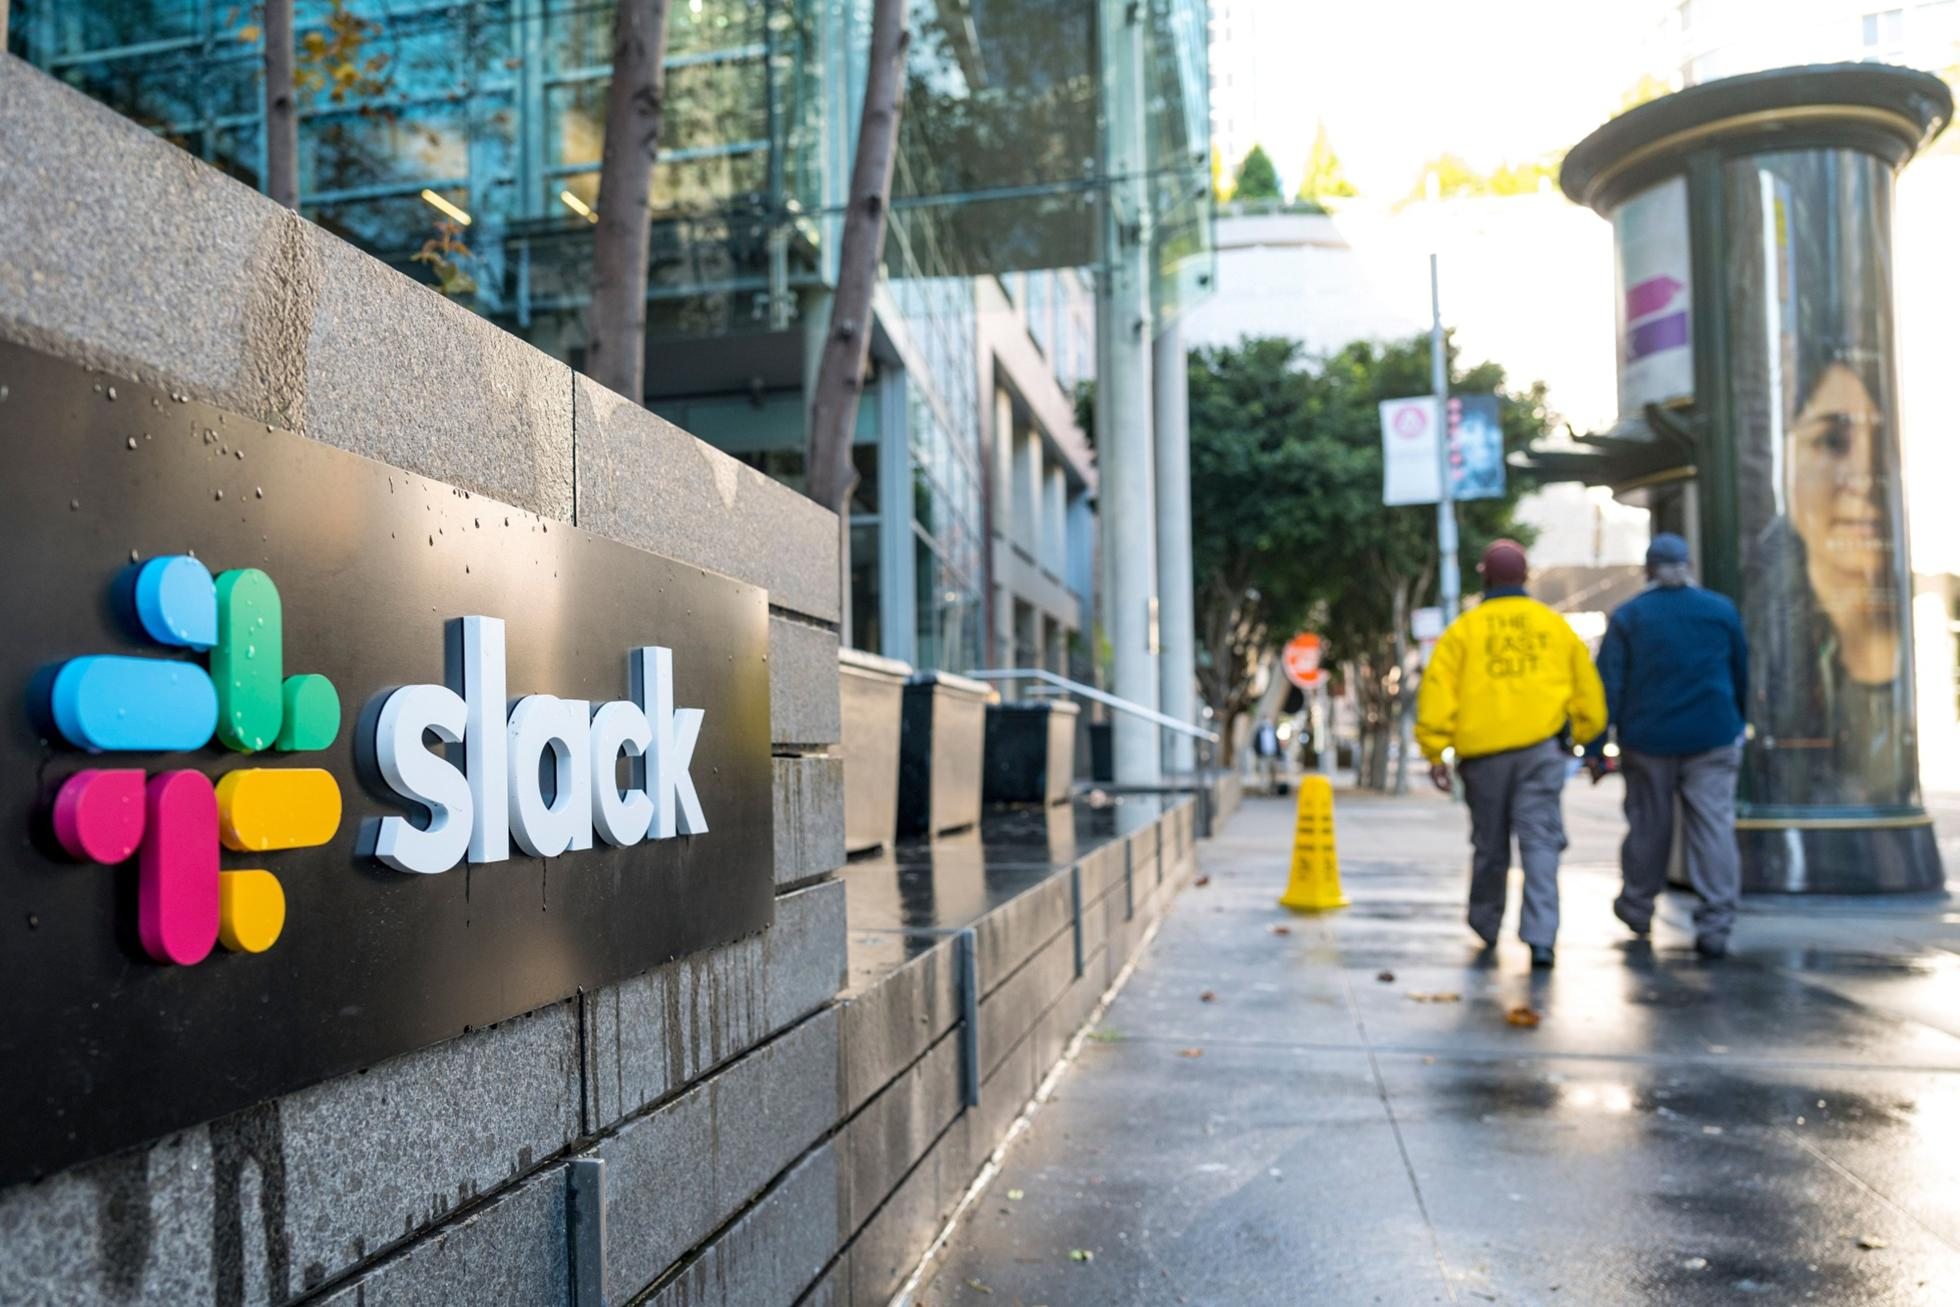 Salesforce To Buy Software Maker Slack For $27.7 Billion